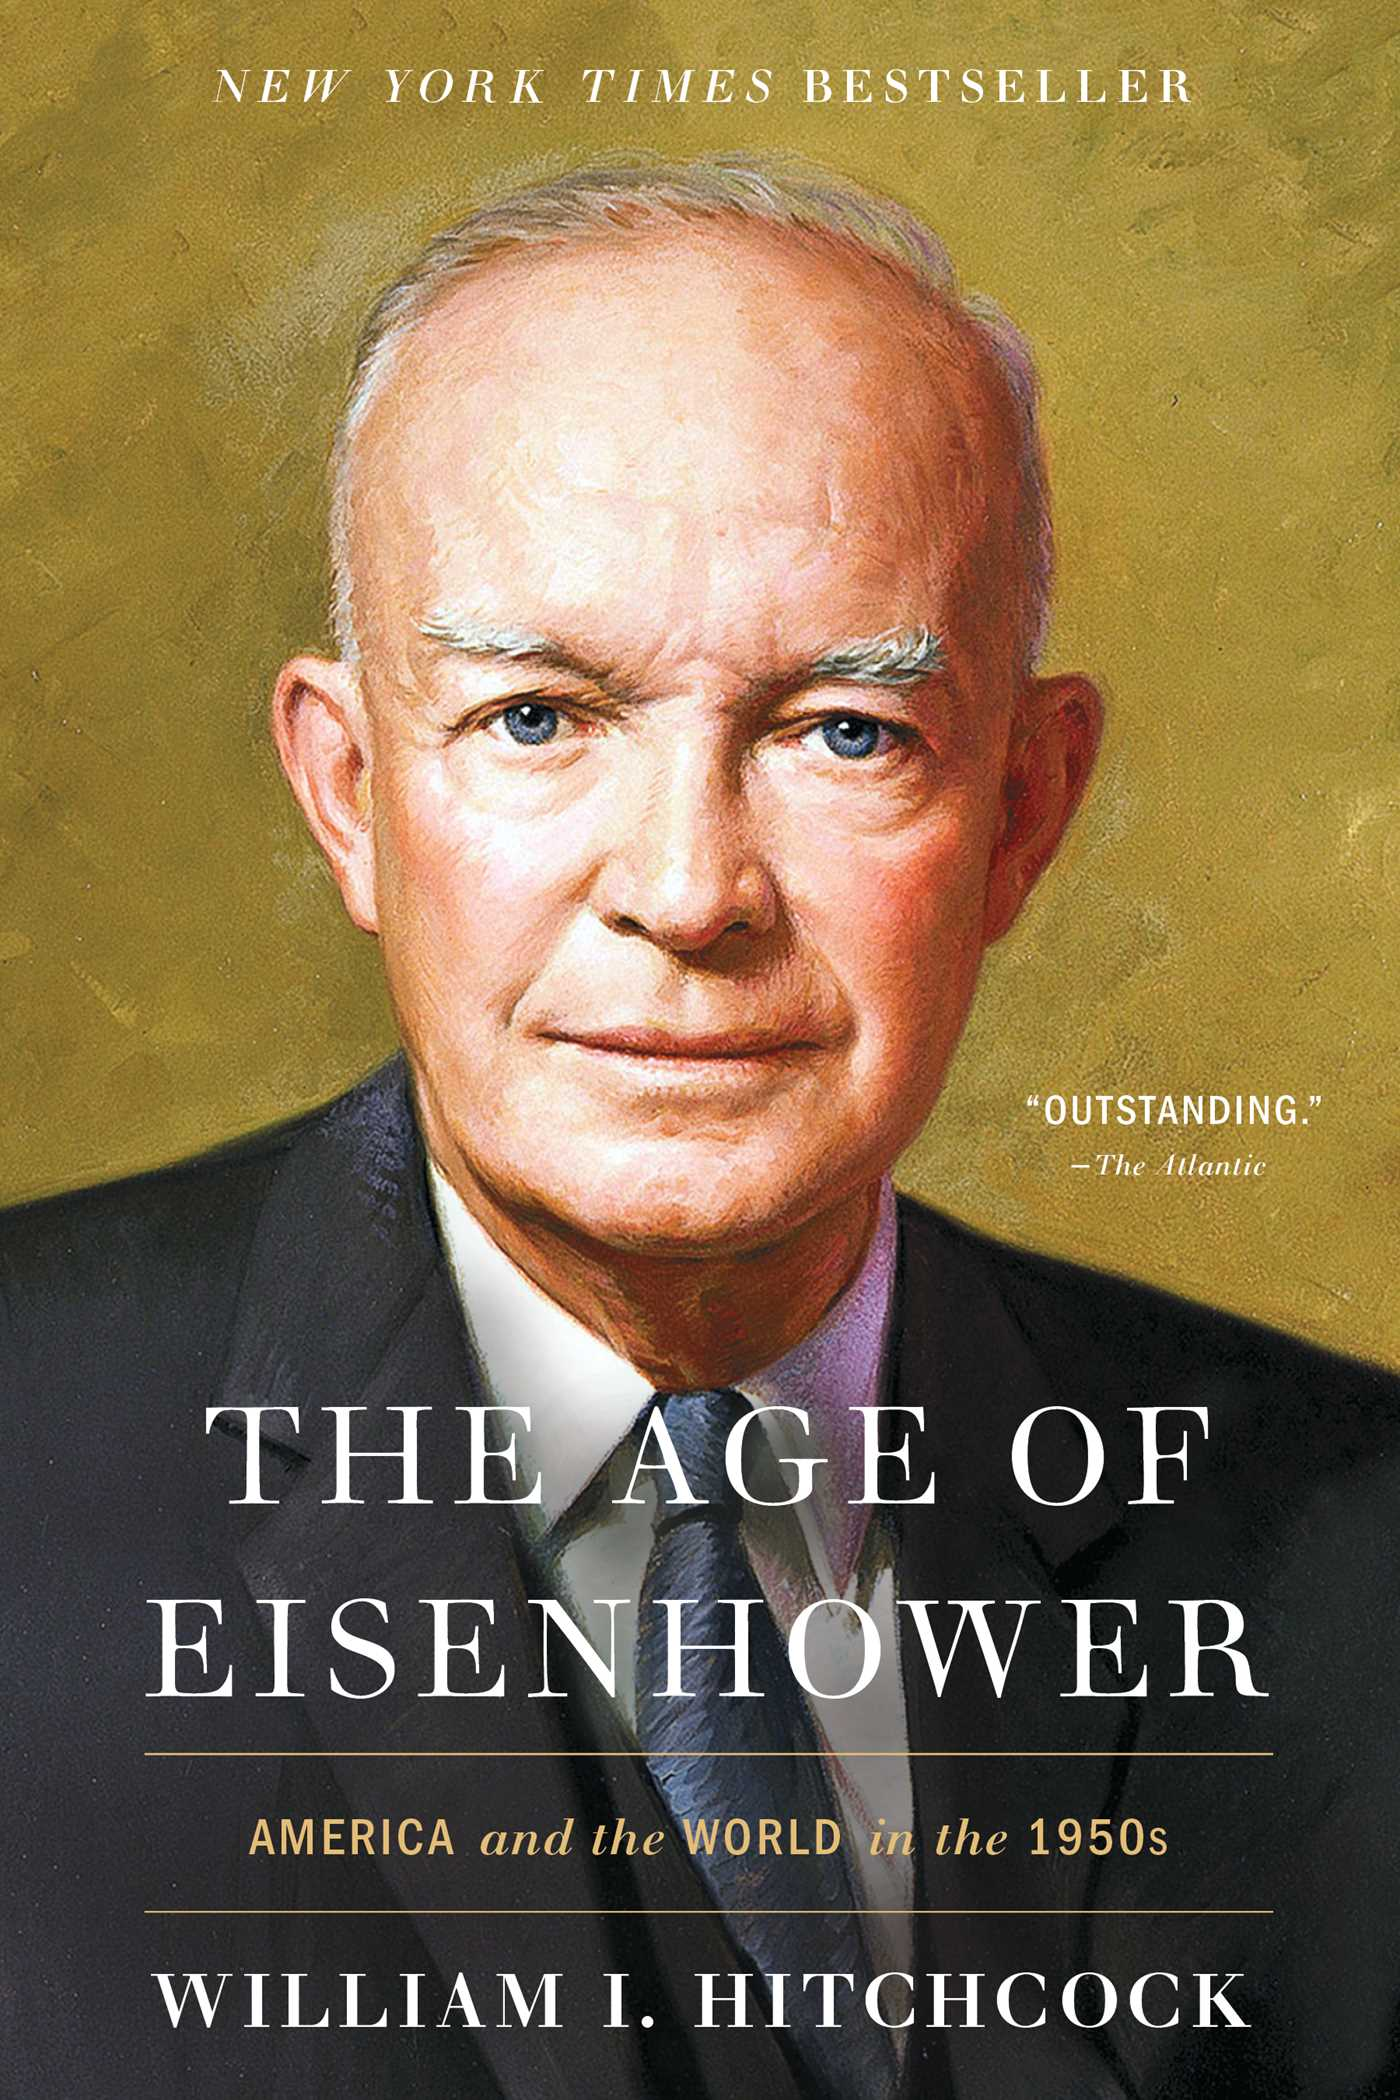 The Age of Eisenhower America and the World in the 1950s